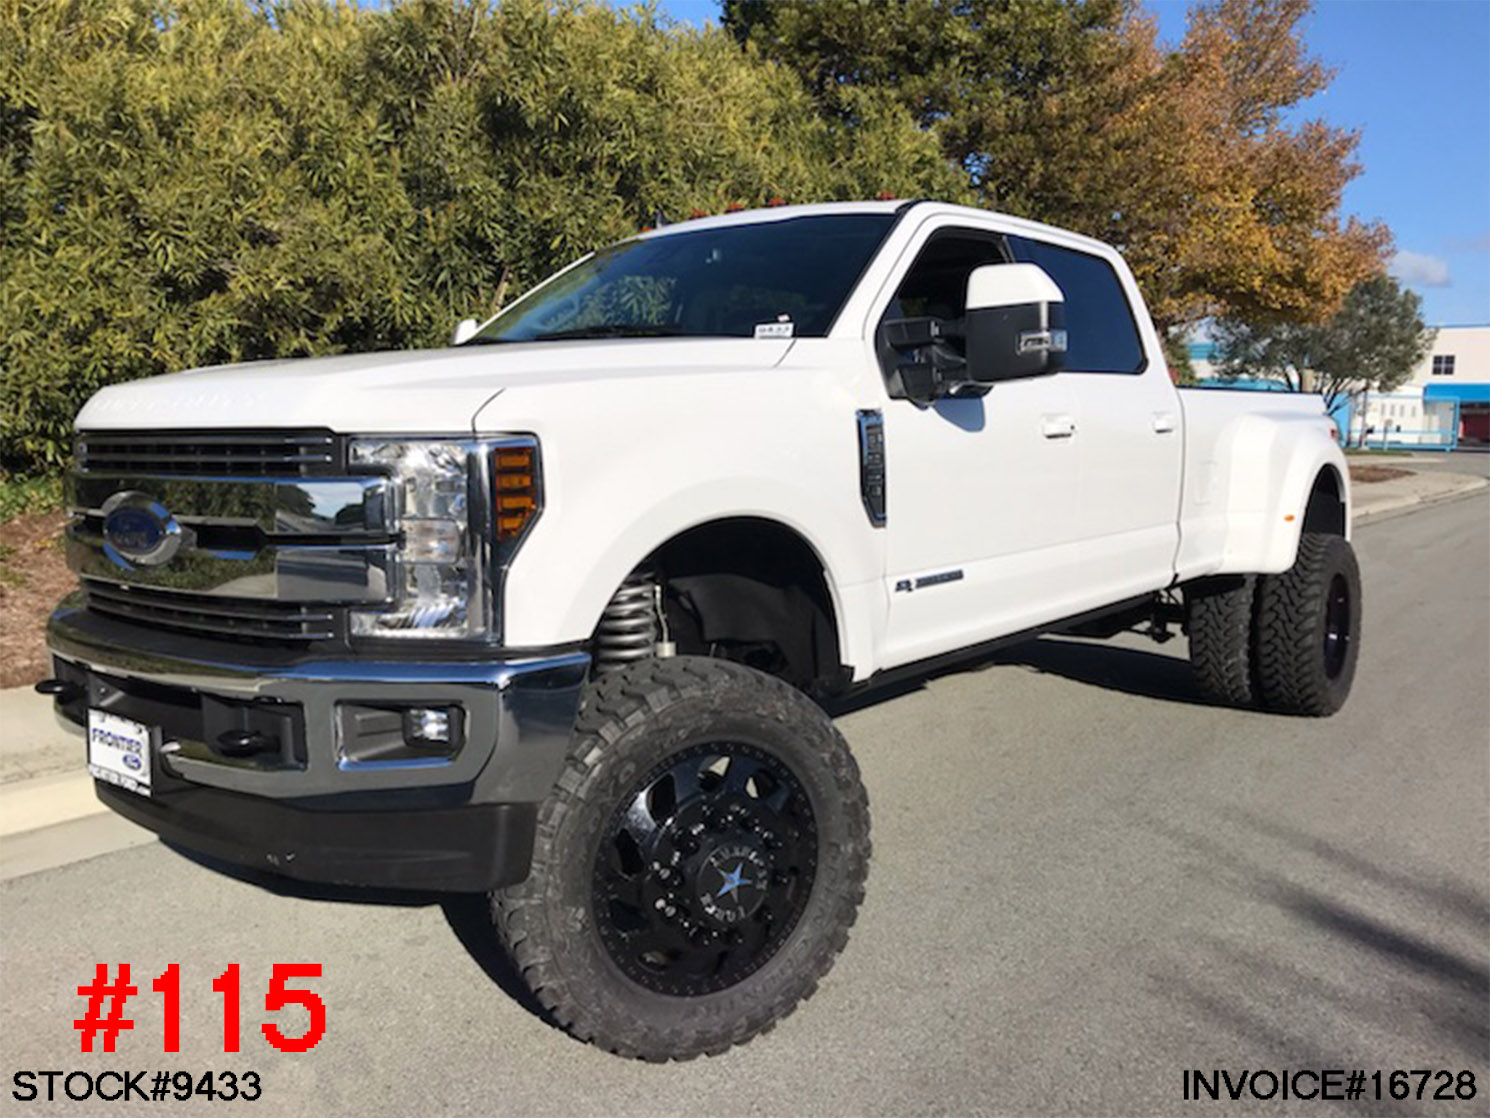 #9433 2019 FORD F350 DUALLY CREW CAB